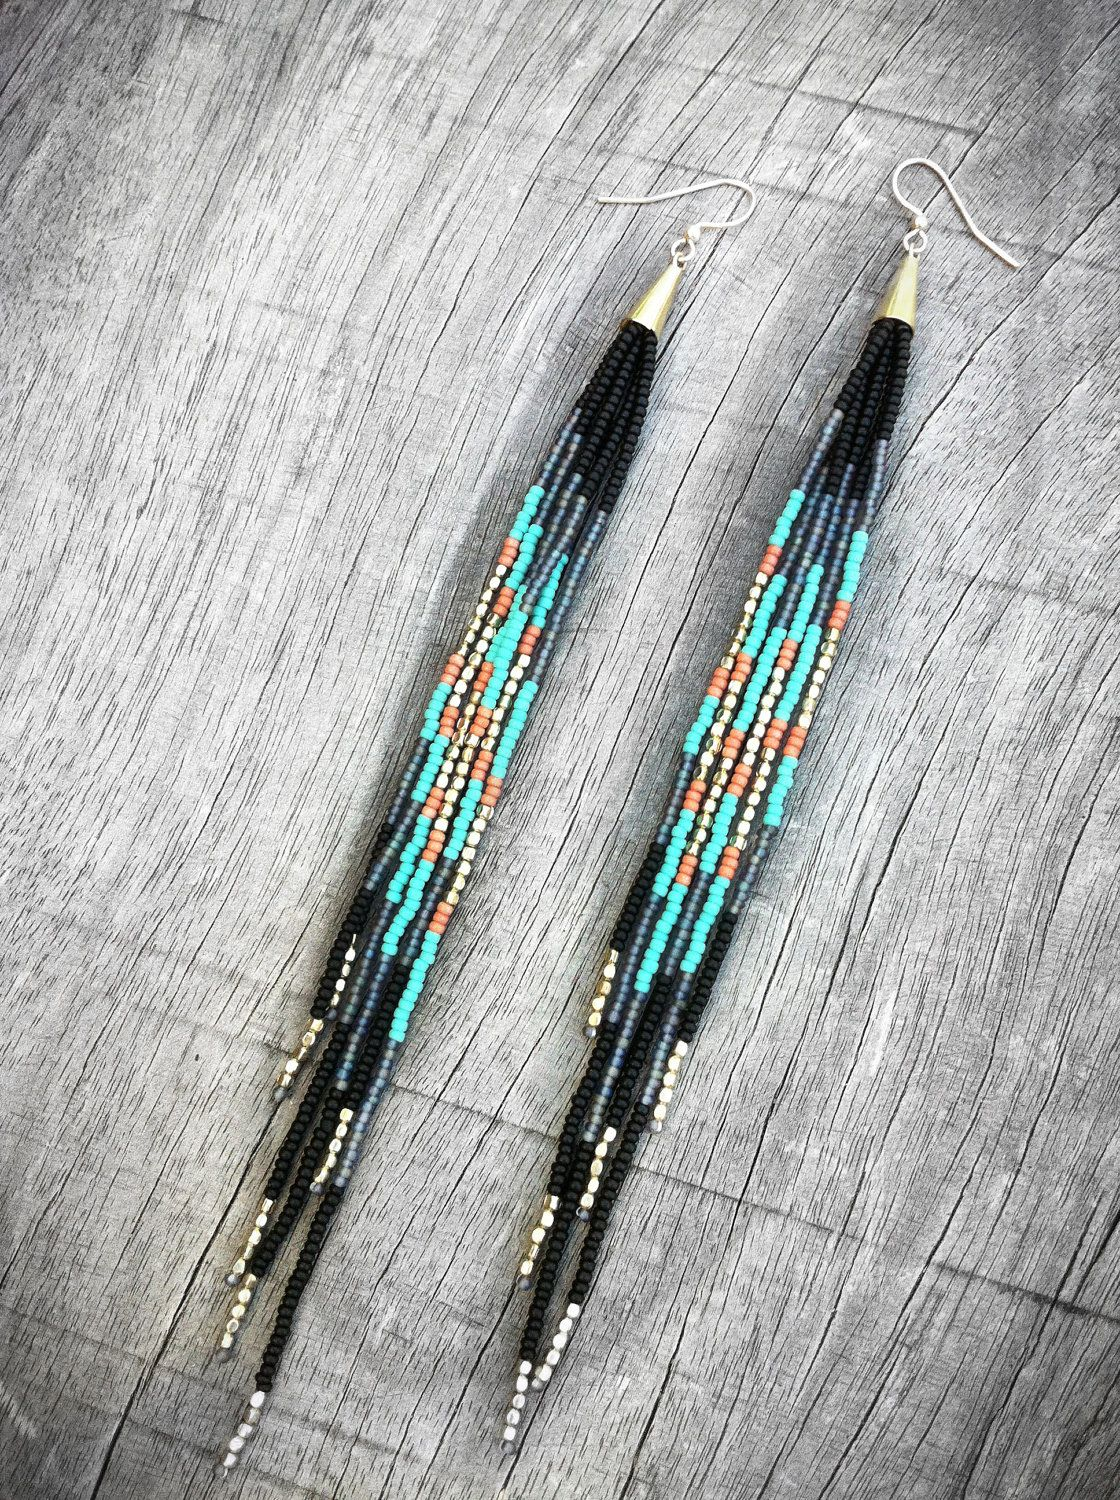 Long Beaded Fringe Seed Bead Earrings Shoulder Dusters In Black Turquoise Grey Salmon And Silver Free People Native Inspired